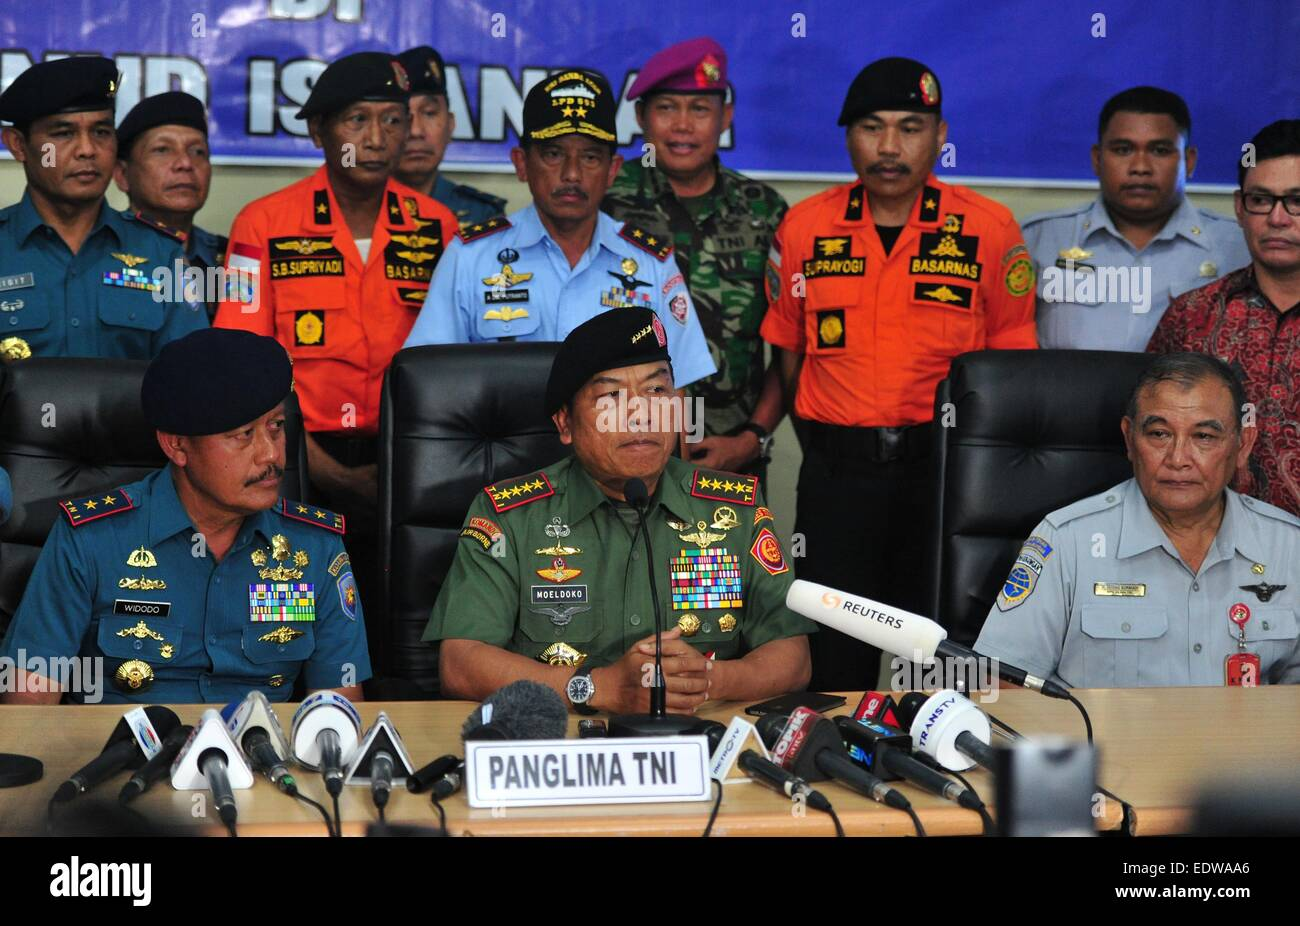 Pangkalan Bun Indonesia  city photo : Pangkalan Bun, Indonesia. 10th Jan, 2015. Indonesian Armed Forces ...